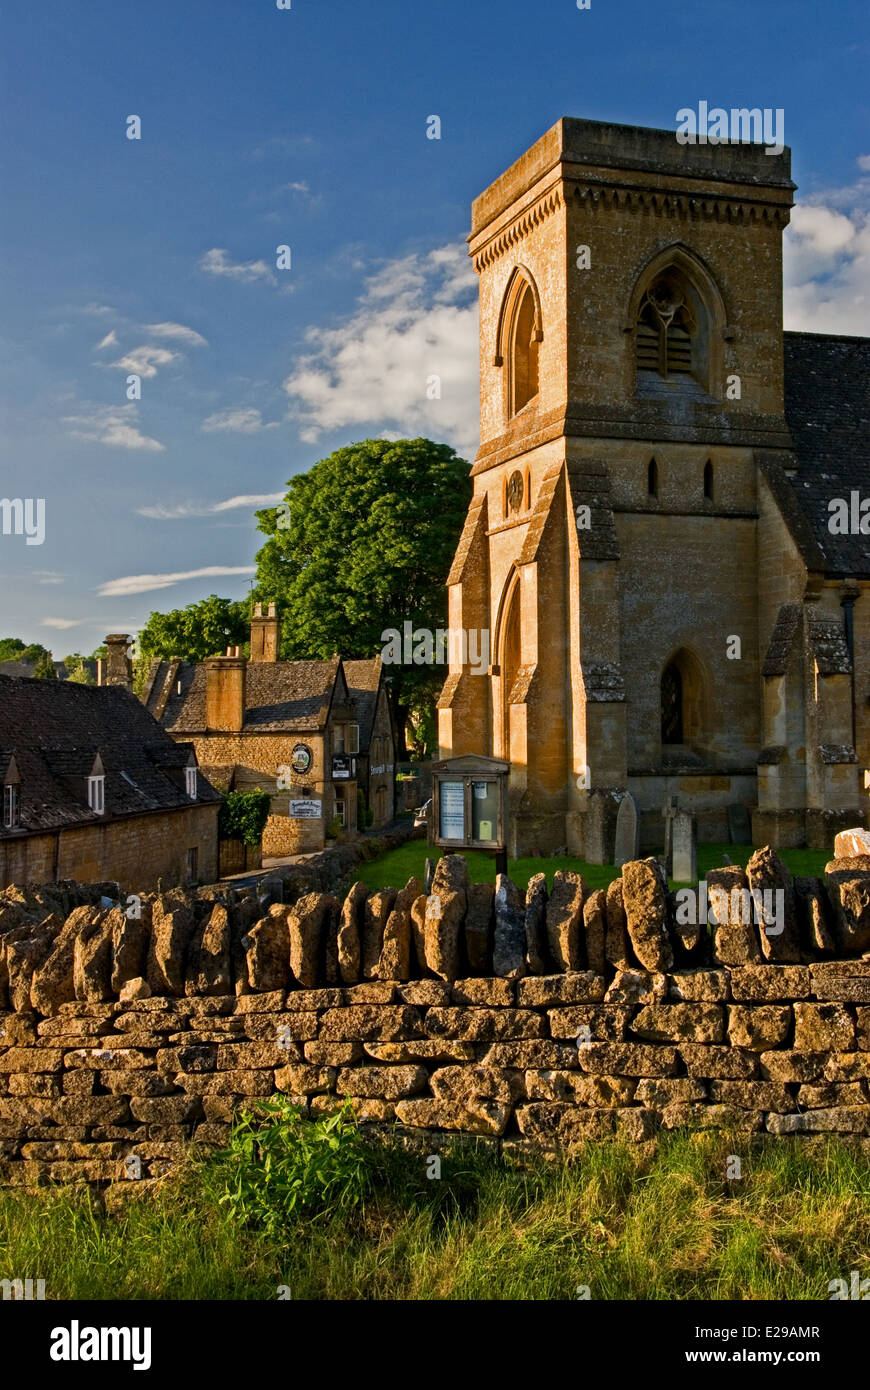 Snowshill village in the Northern Cotswolds is a typical picturesque English village with the small church at its - Stock Image